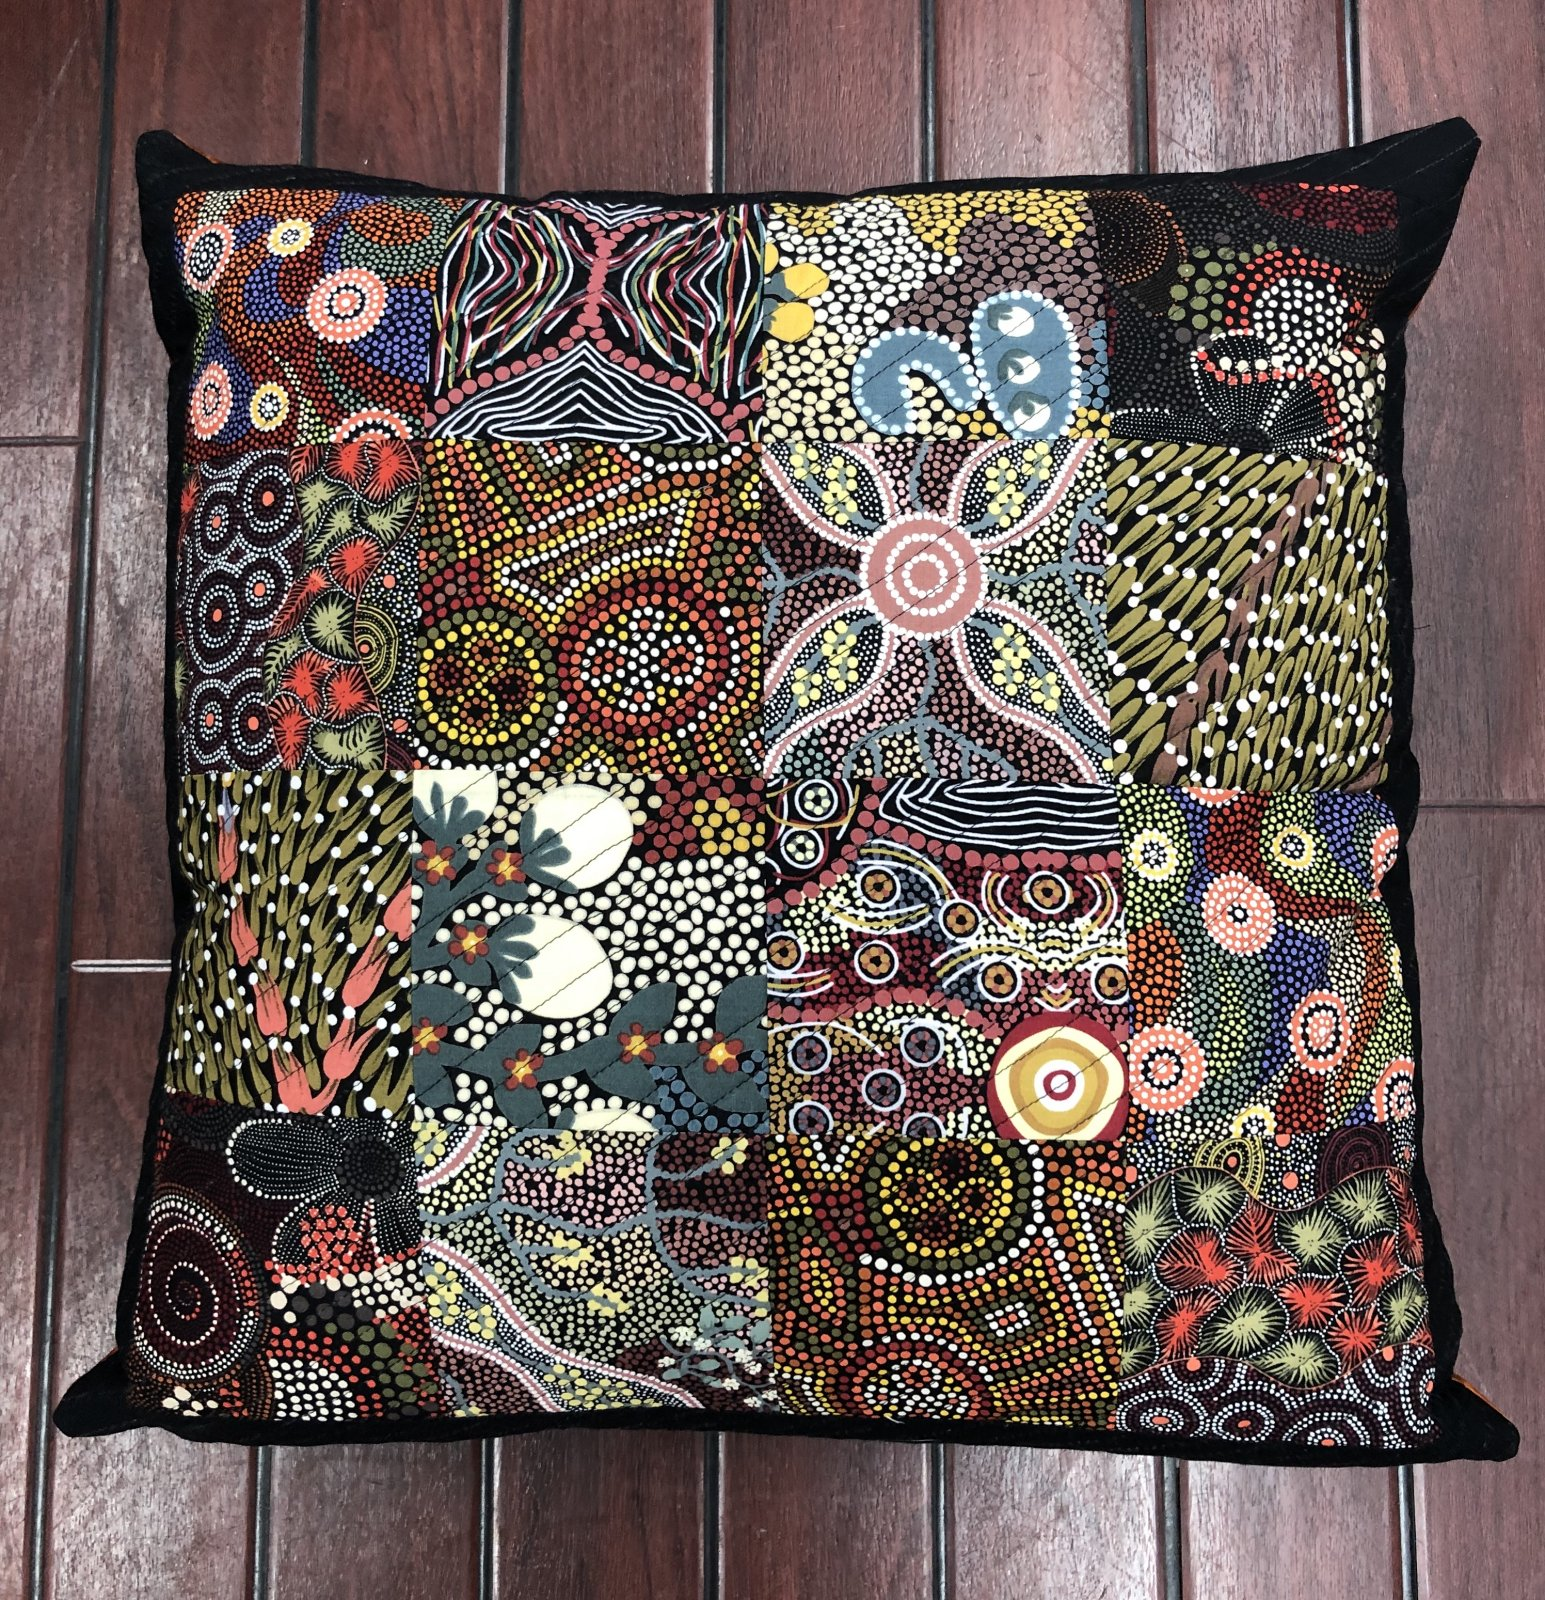 Bush Spice Cushion Pattern